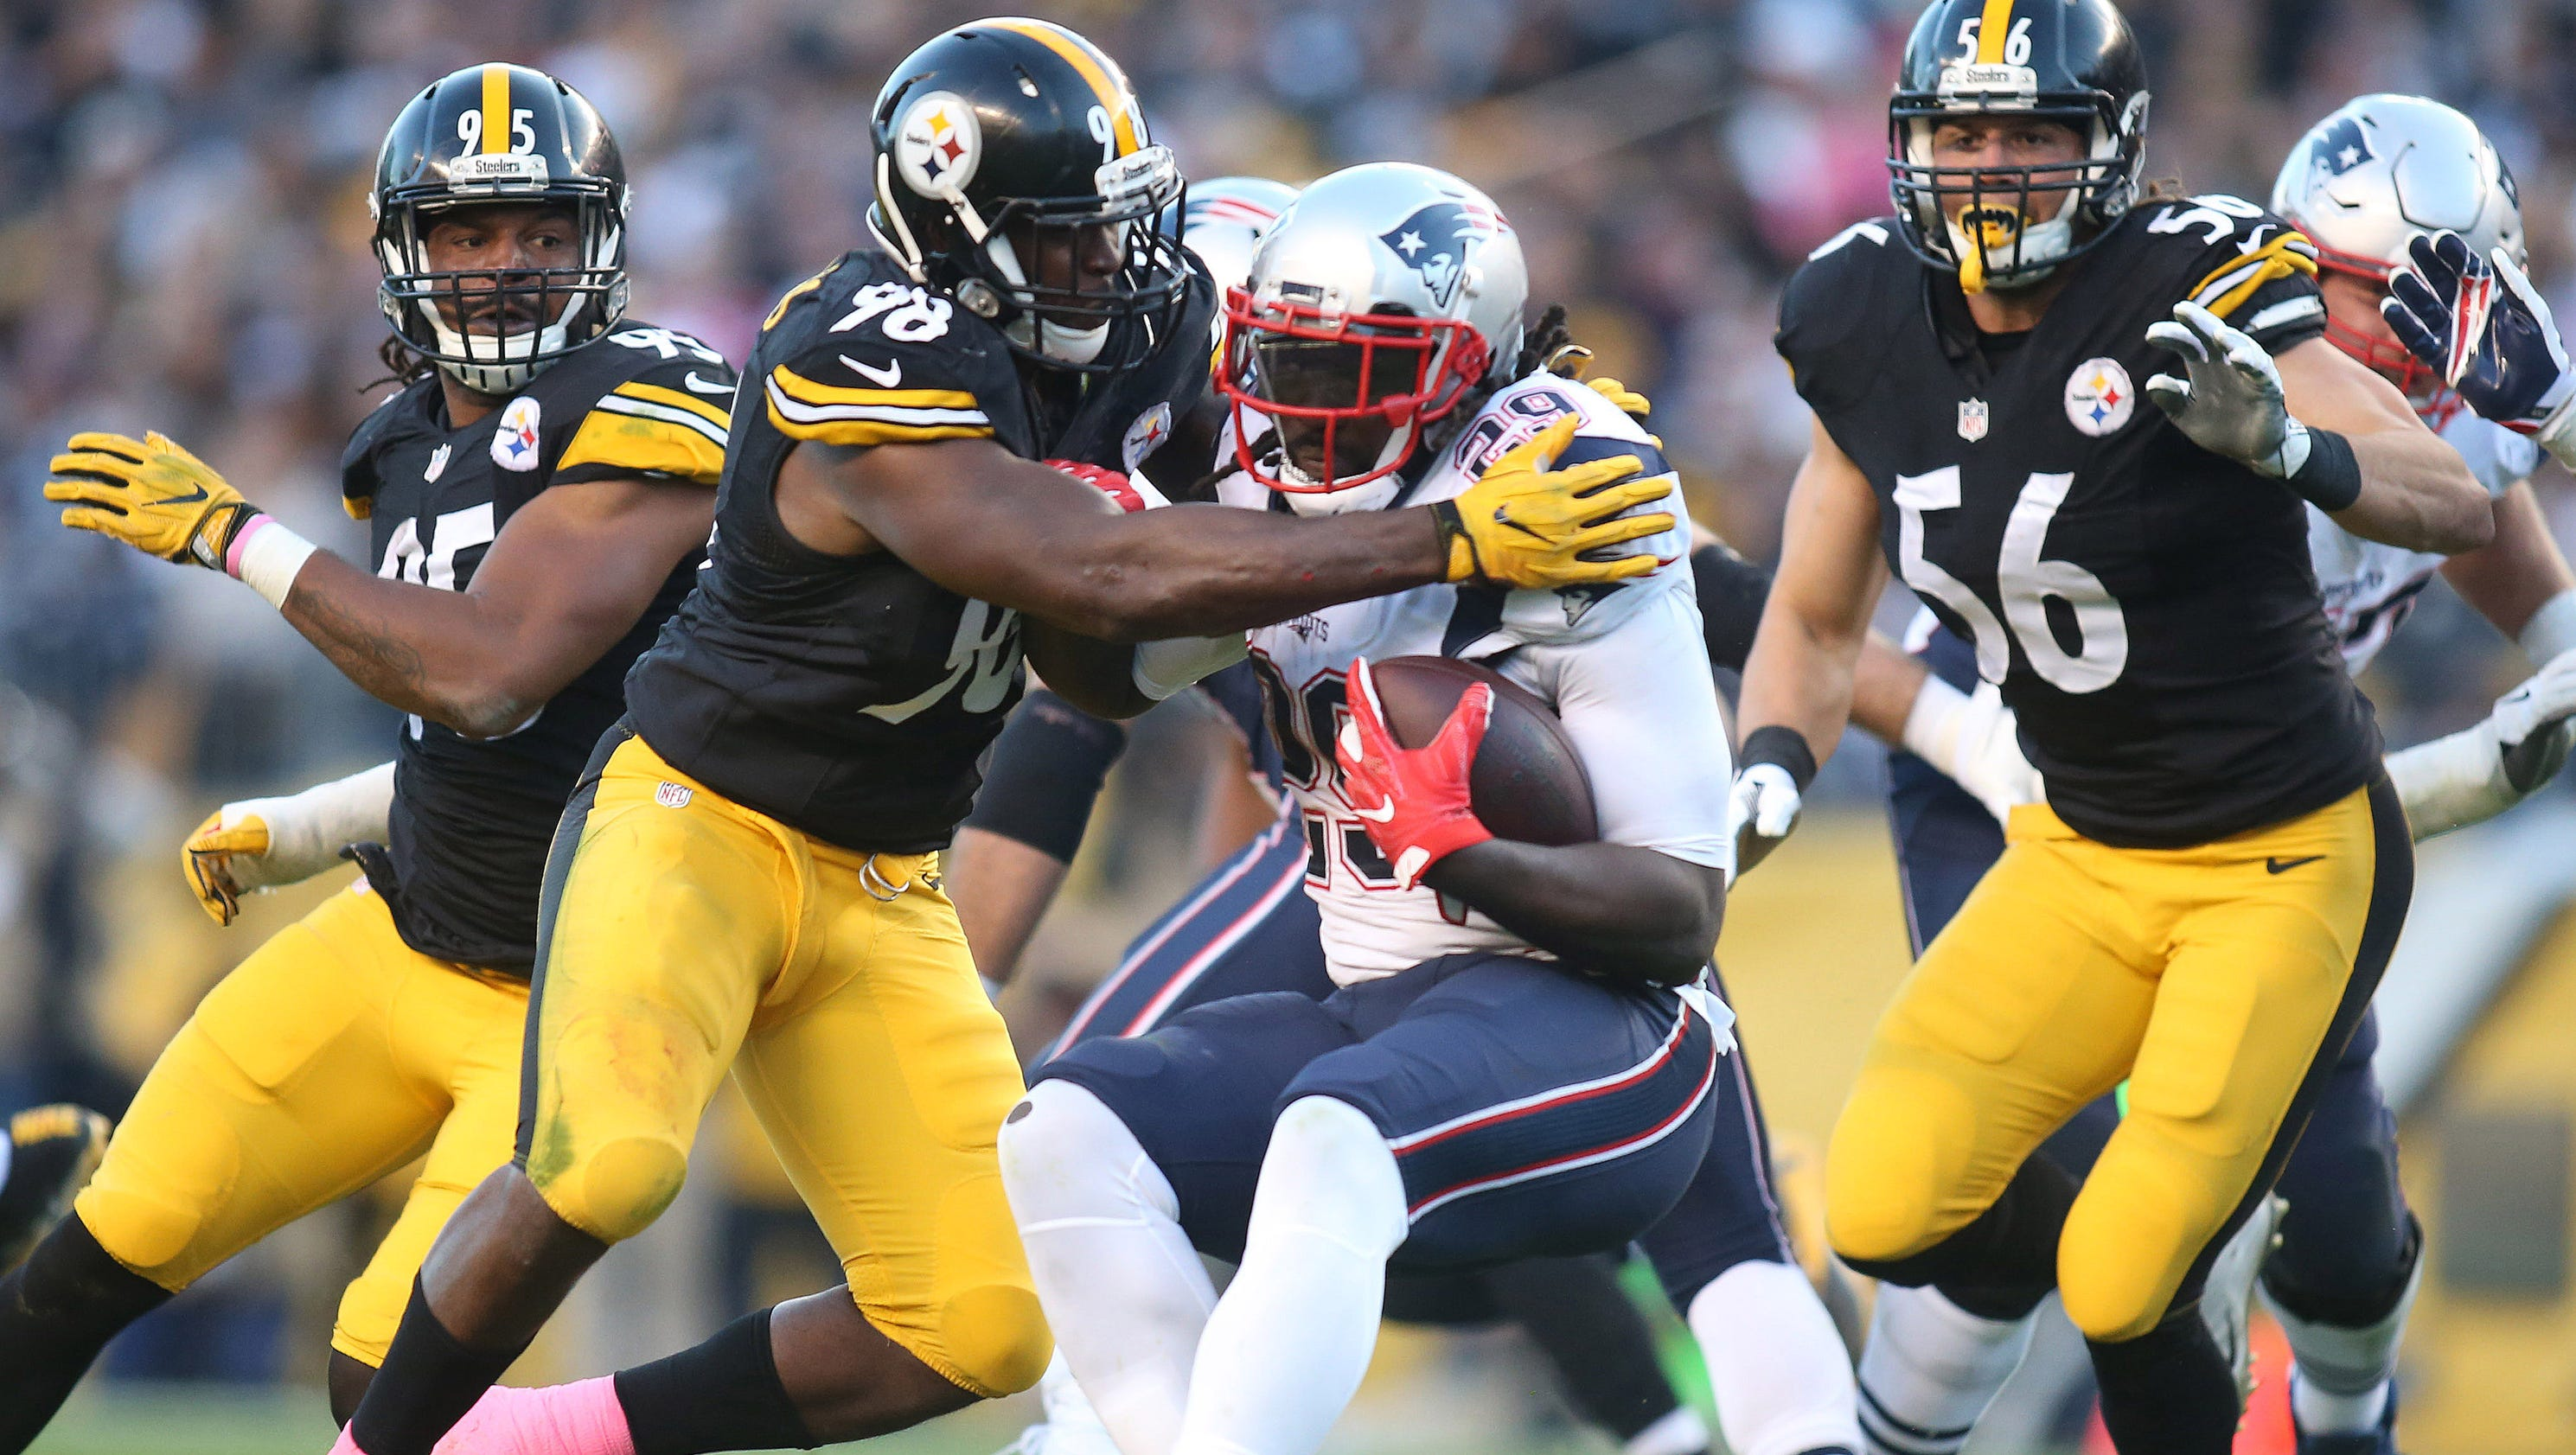 636204504941987468-usp-nfl-new-england-patriots-at-pittsburgh-steele-86207694